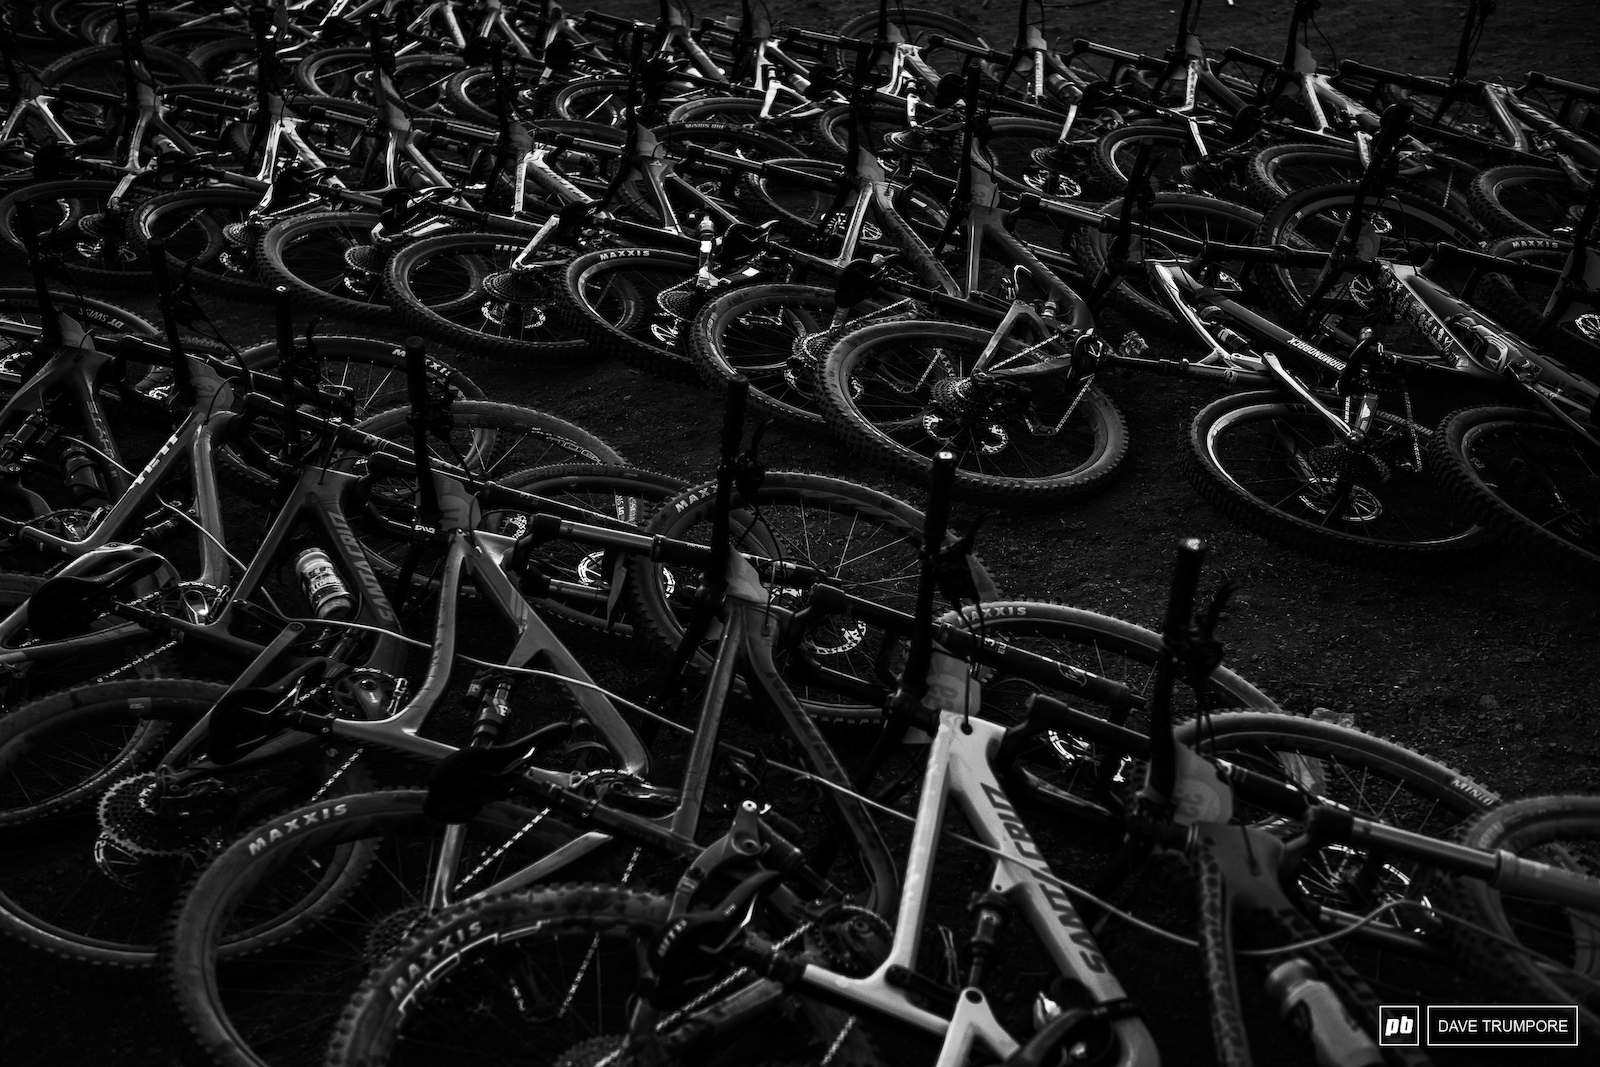 Bikes lined up in camp awaiting the first day of racing